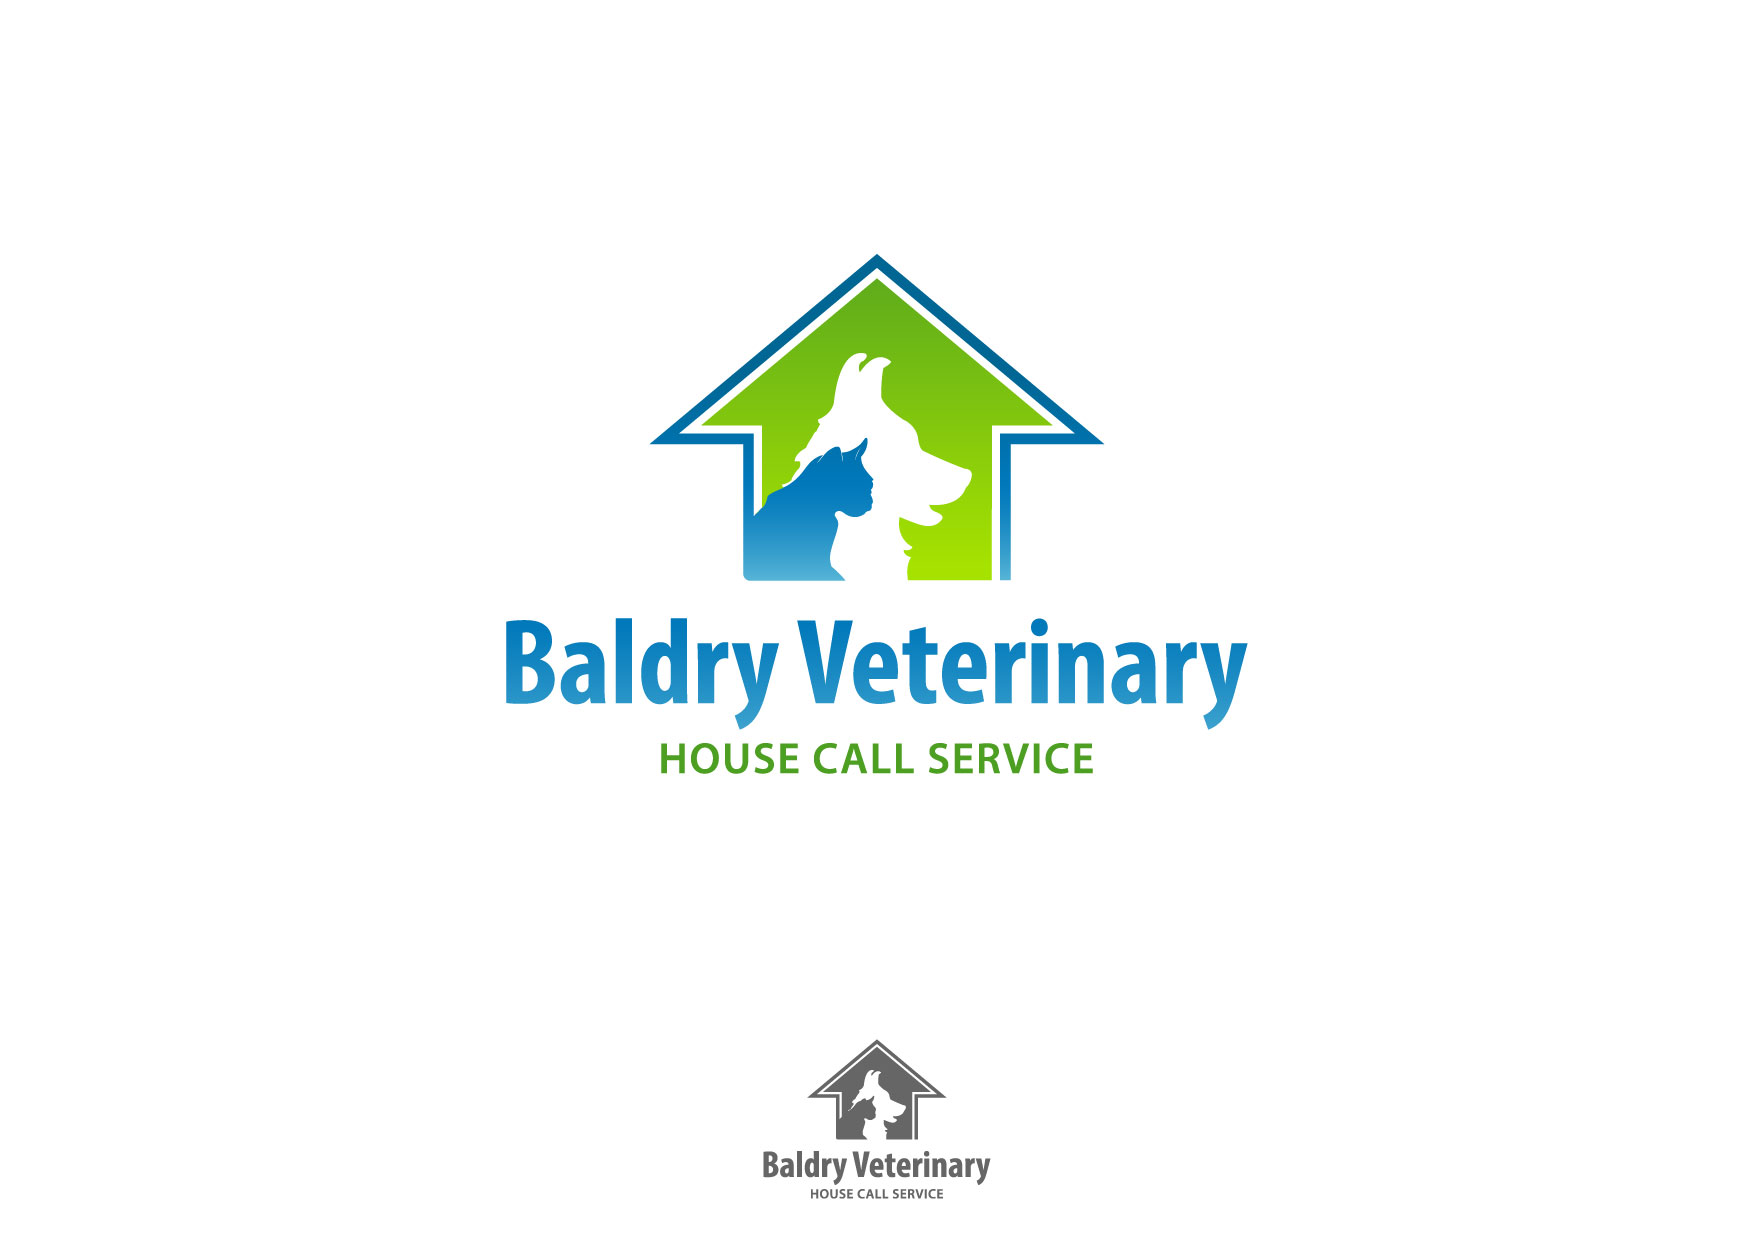 Logo Design by Nurgalih Destianto - Entry No. 142 in the Logo Design Contest Captivating Logo Design for Baldry Veterinary House Call Service.